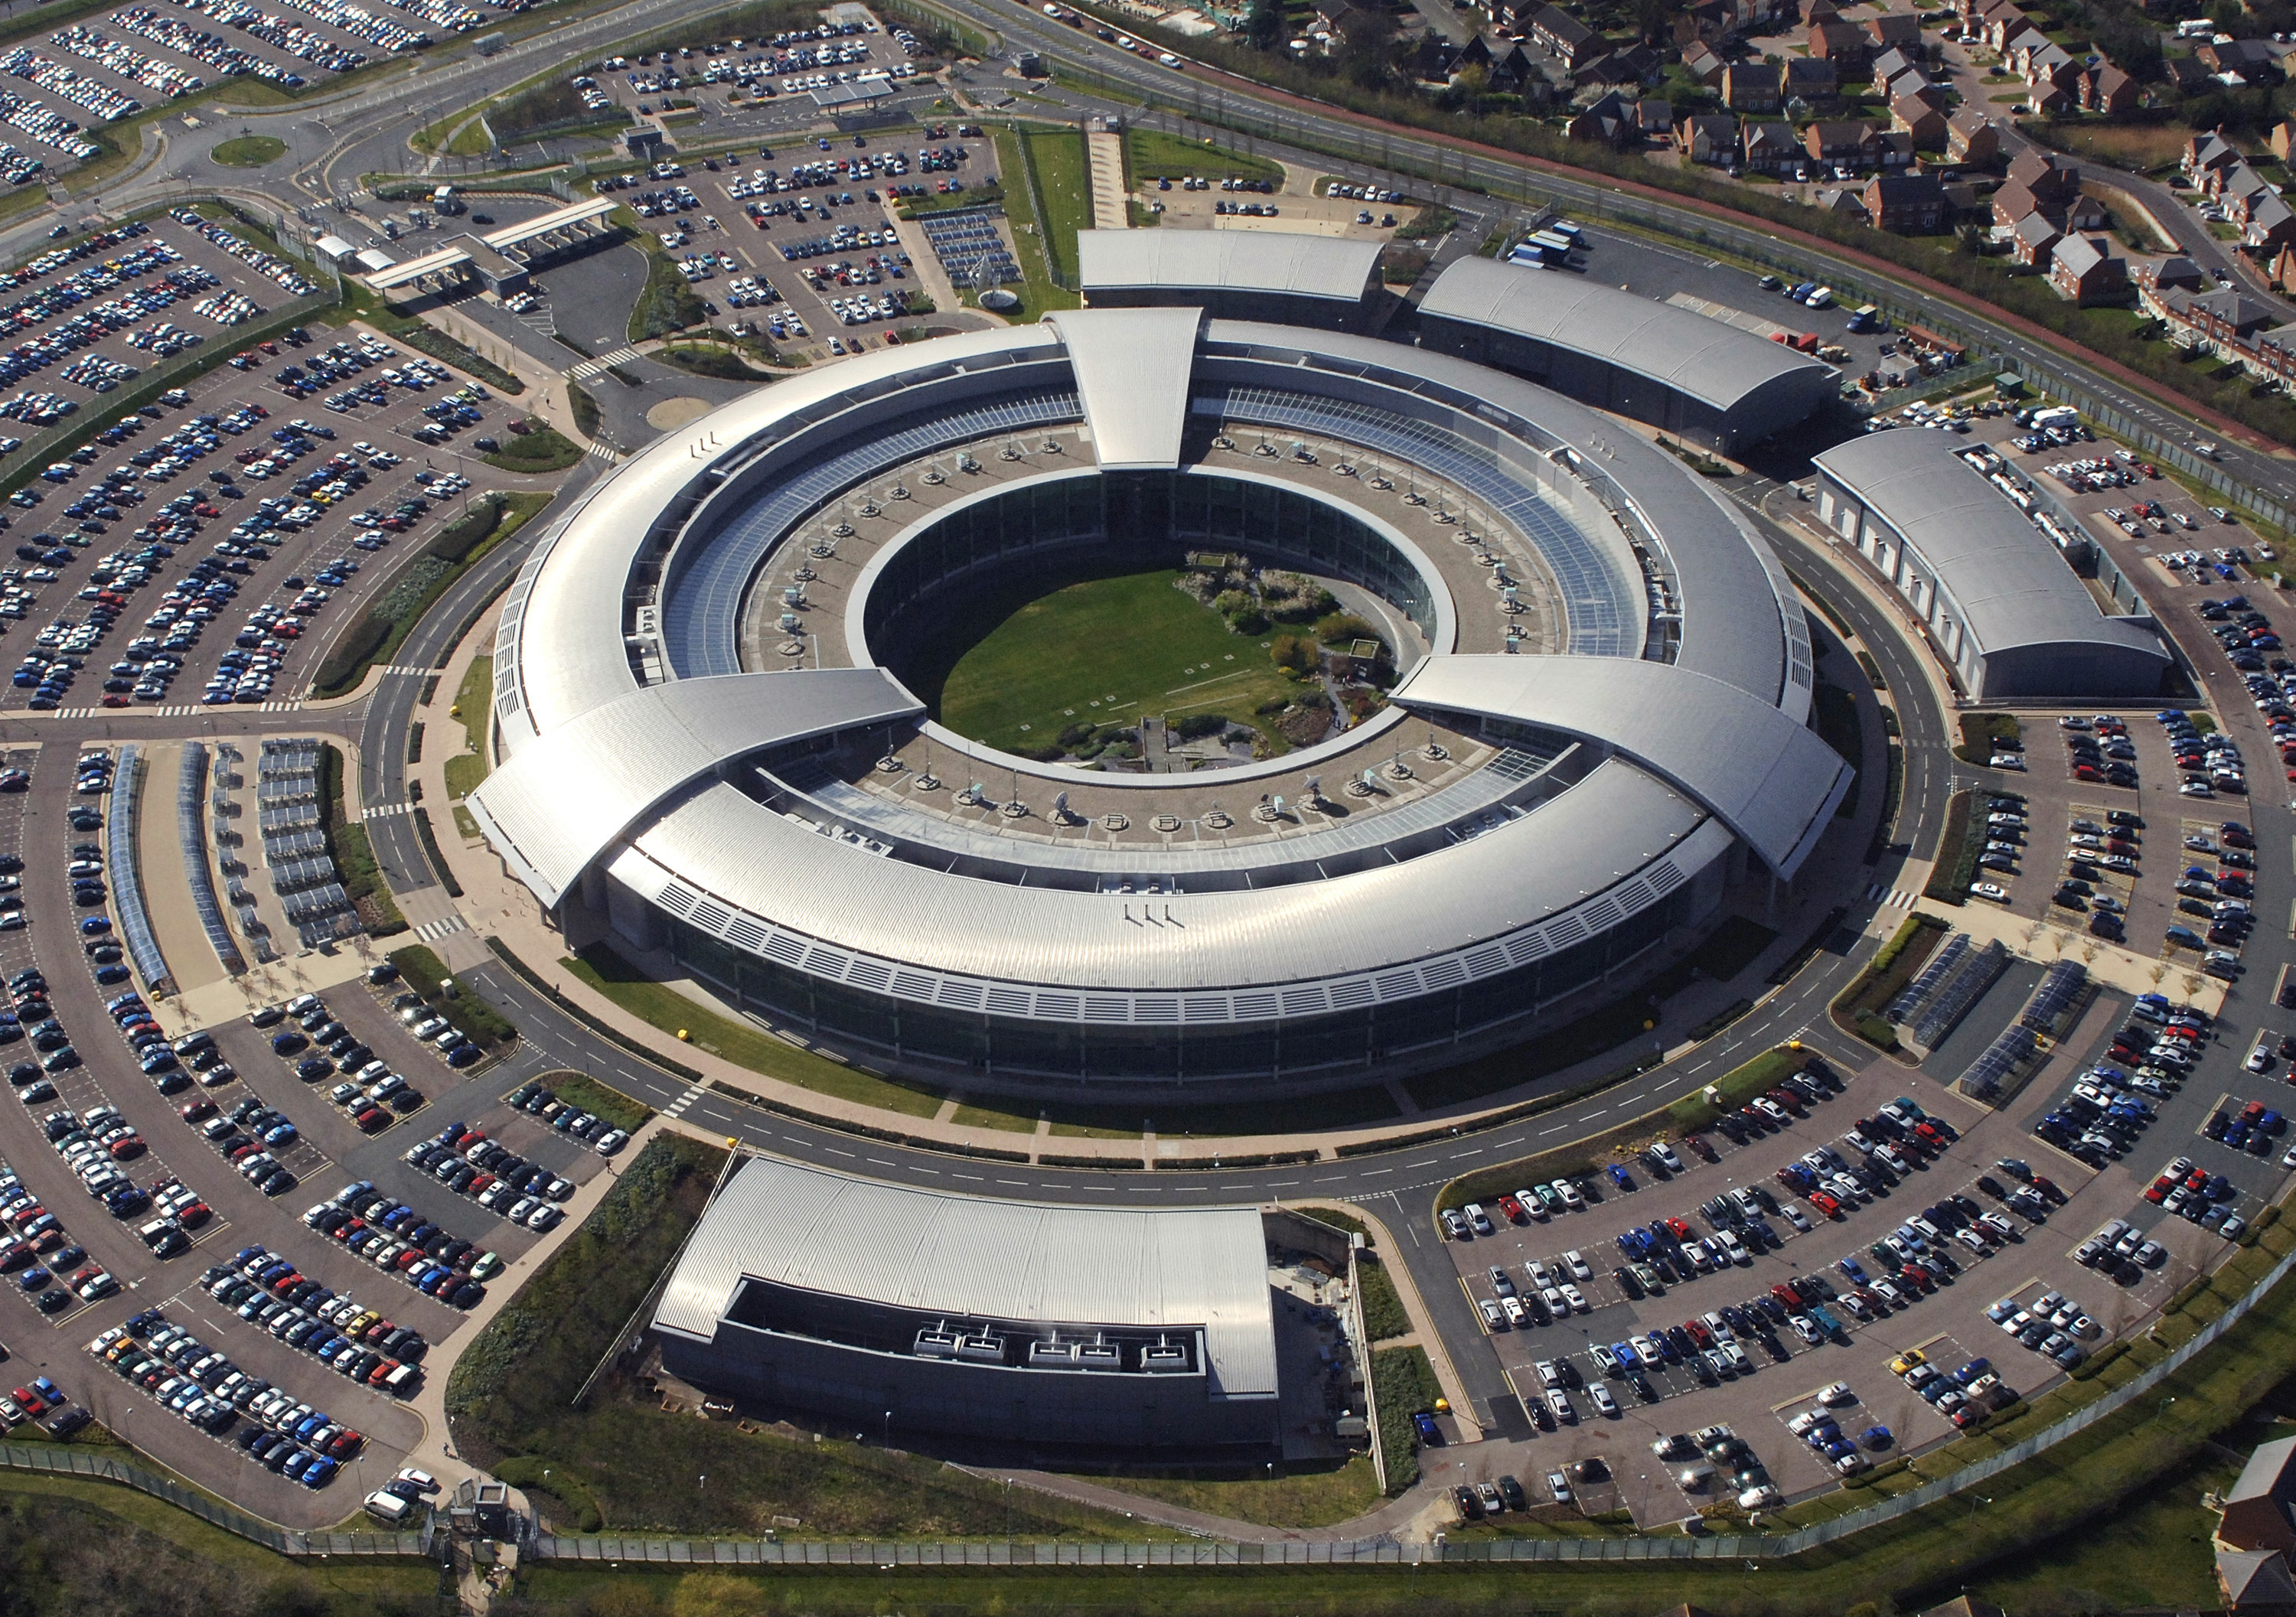 GCHQ - the spiders web